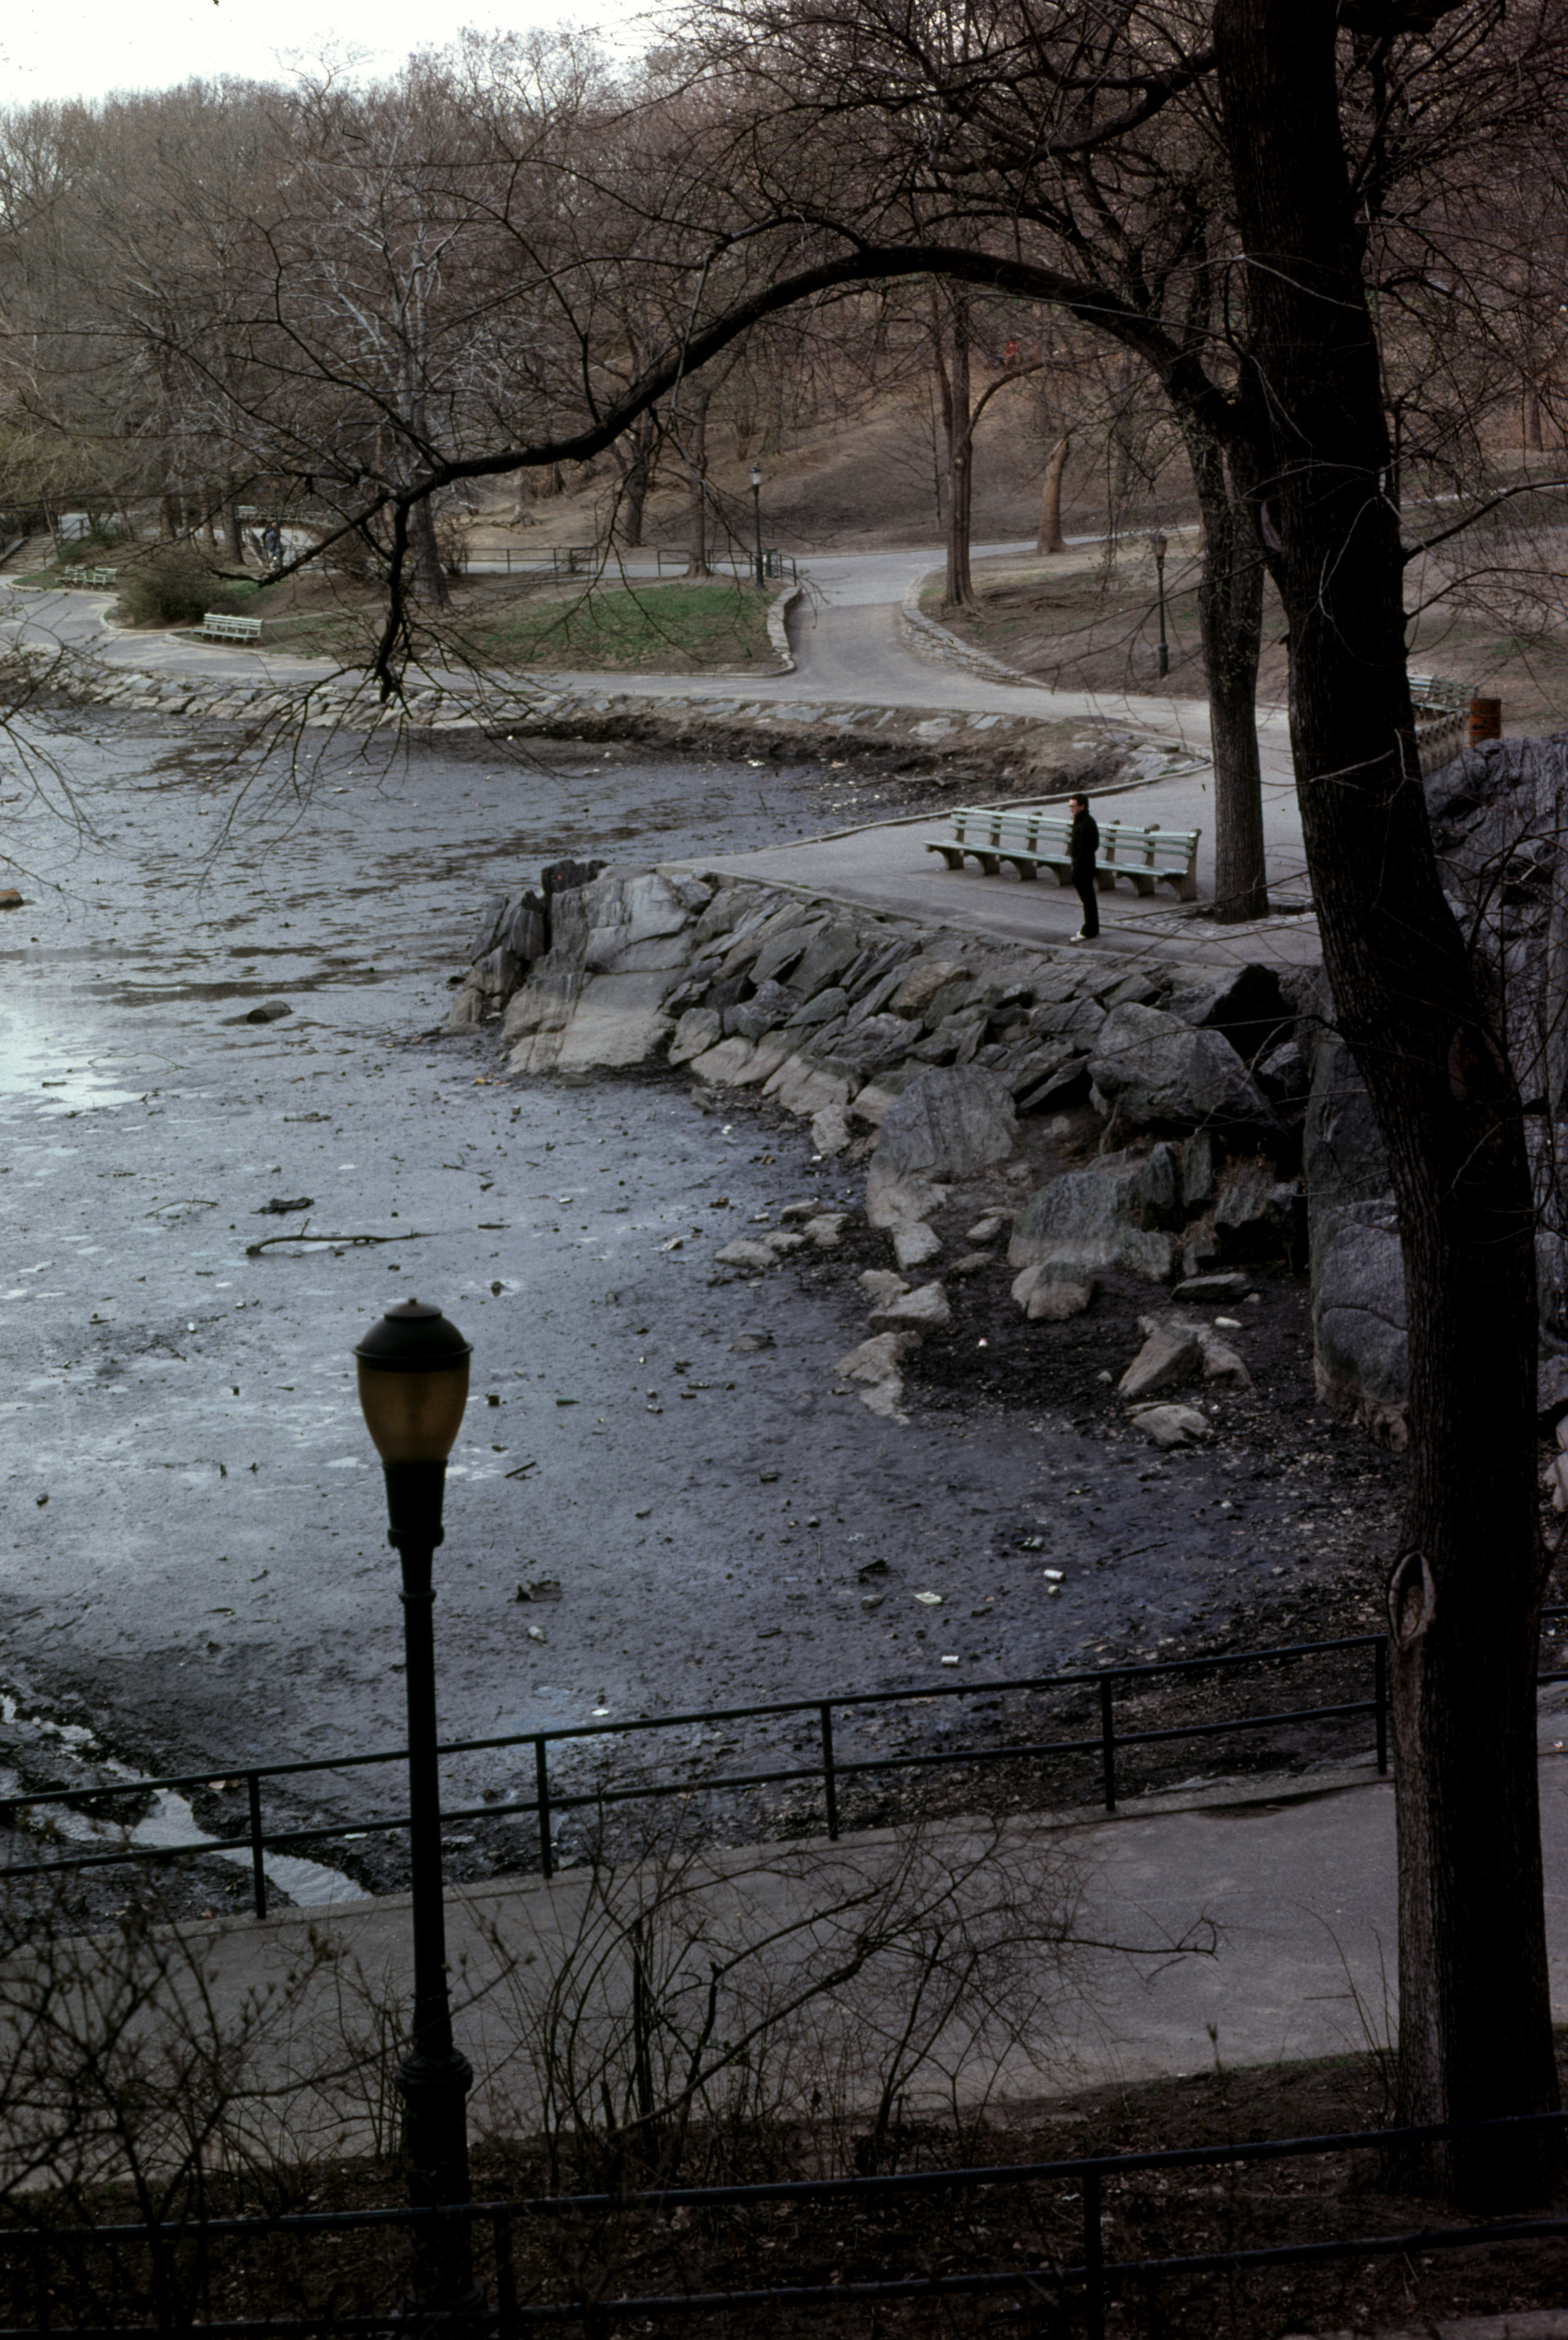 New York City 1979 - Man in Central Park thinking about something